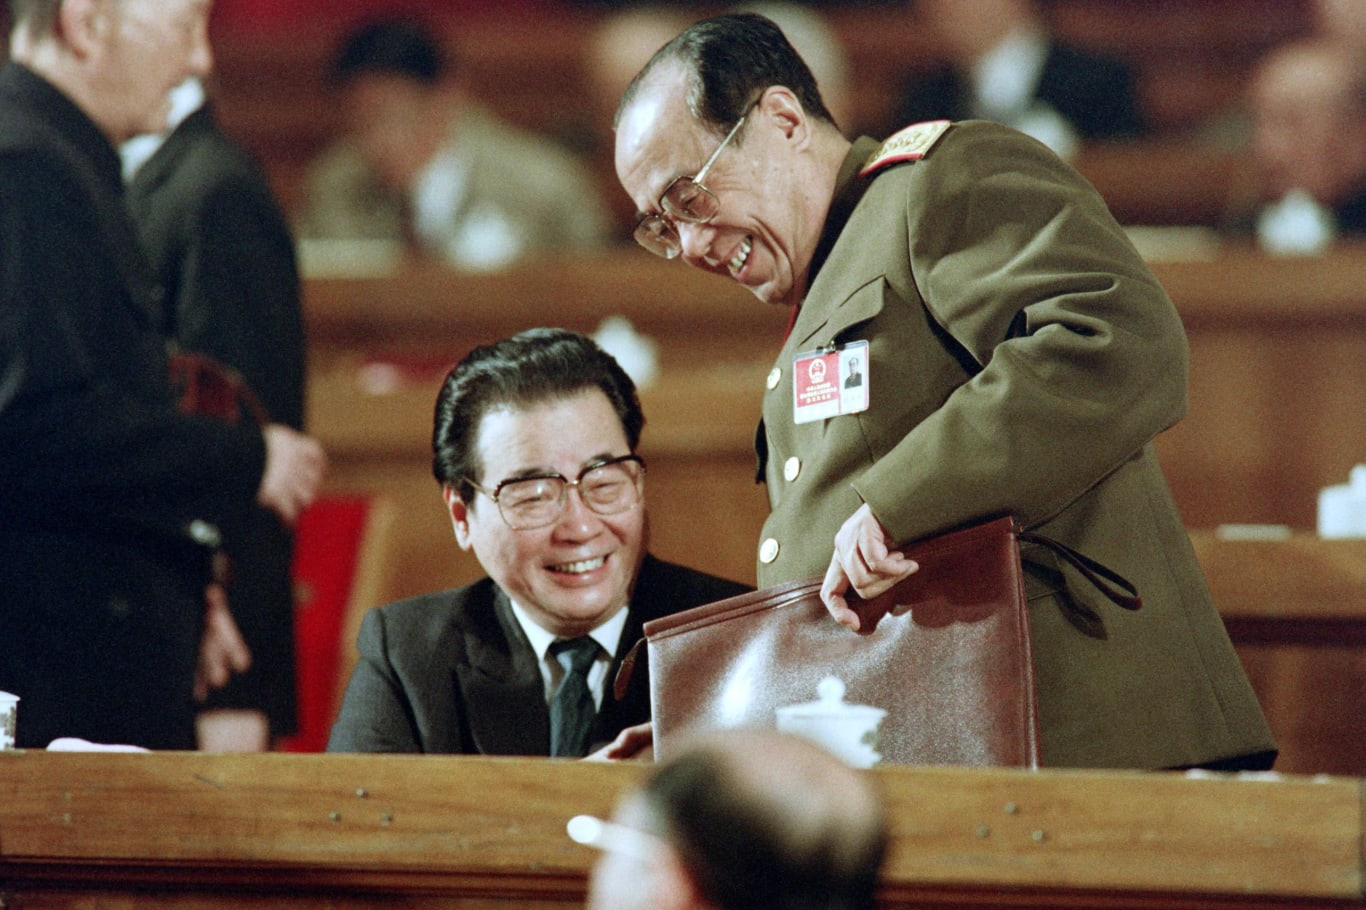 Chinese Prime Minister Li Peng (left) at the National People's Congress on March 21, 1992 in Beijing, China.